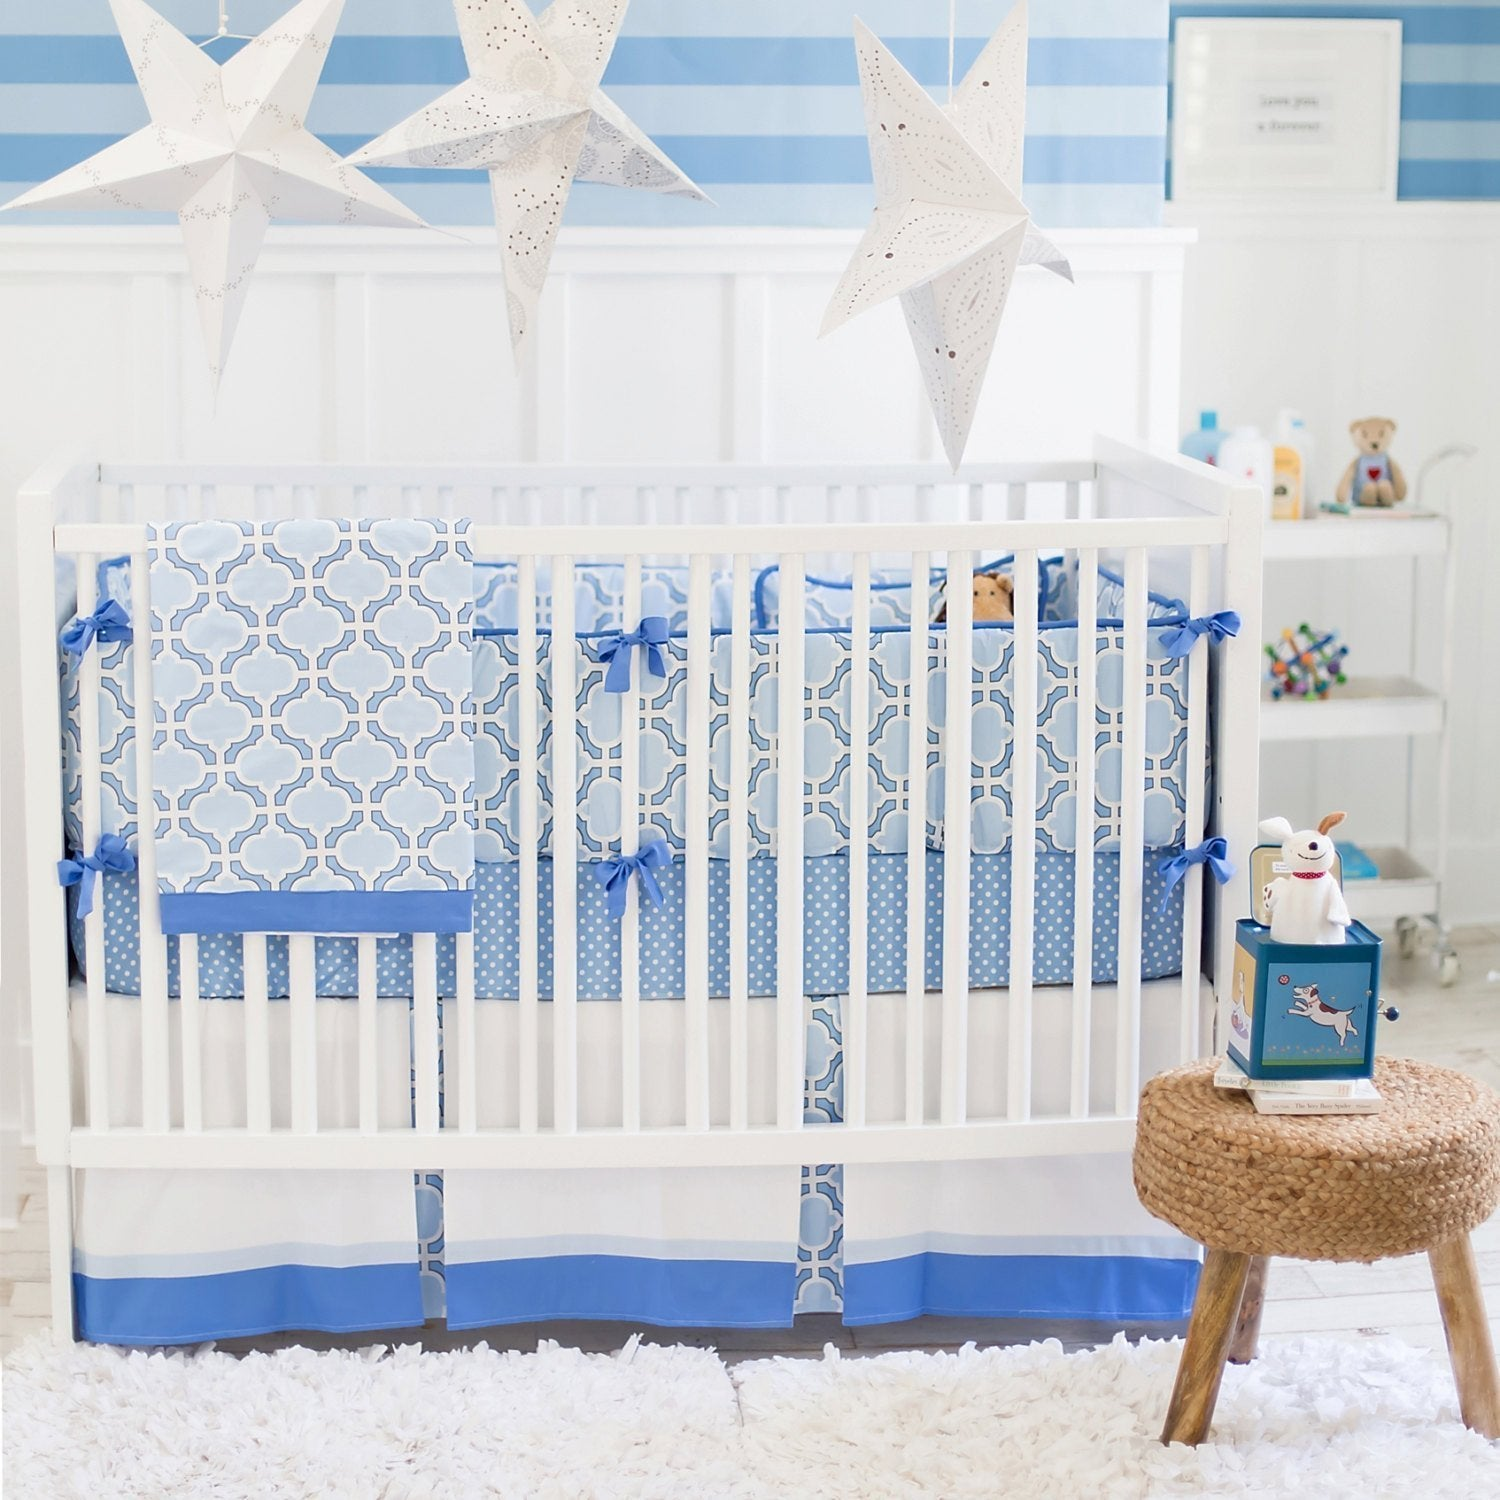 Blue and White Carousel Baby Bedding Set-Crib Bedding Set-New Arrivals-Jack and Jill Boutique